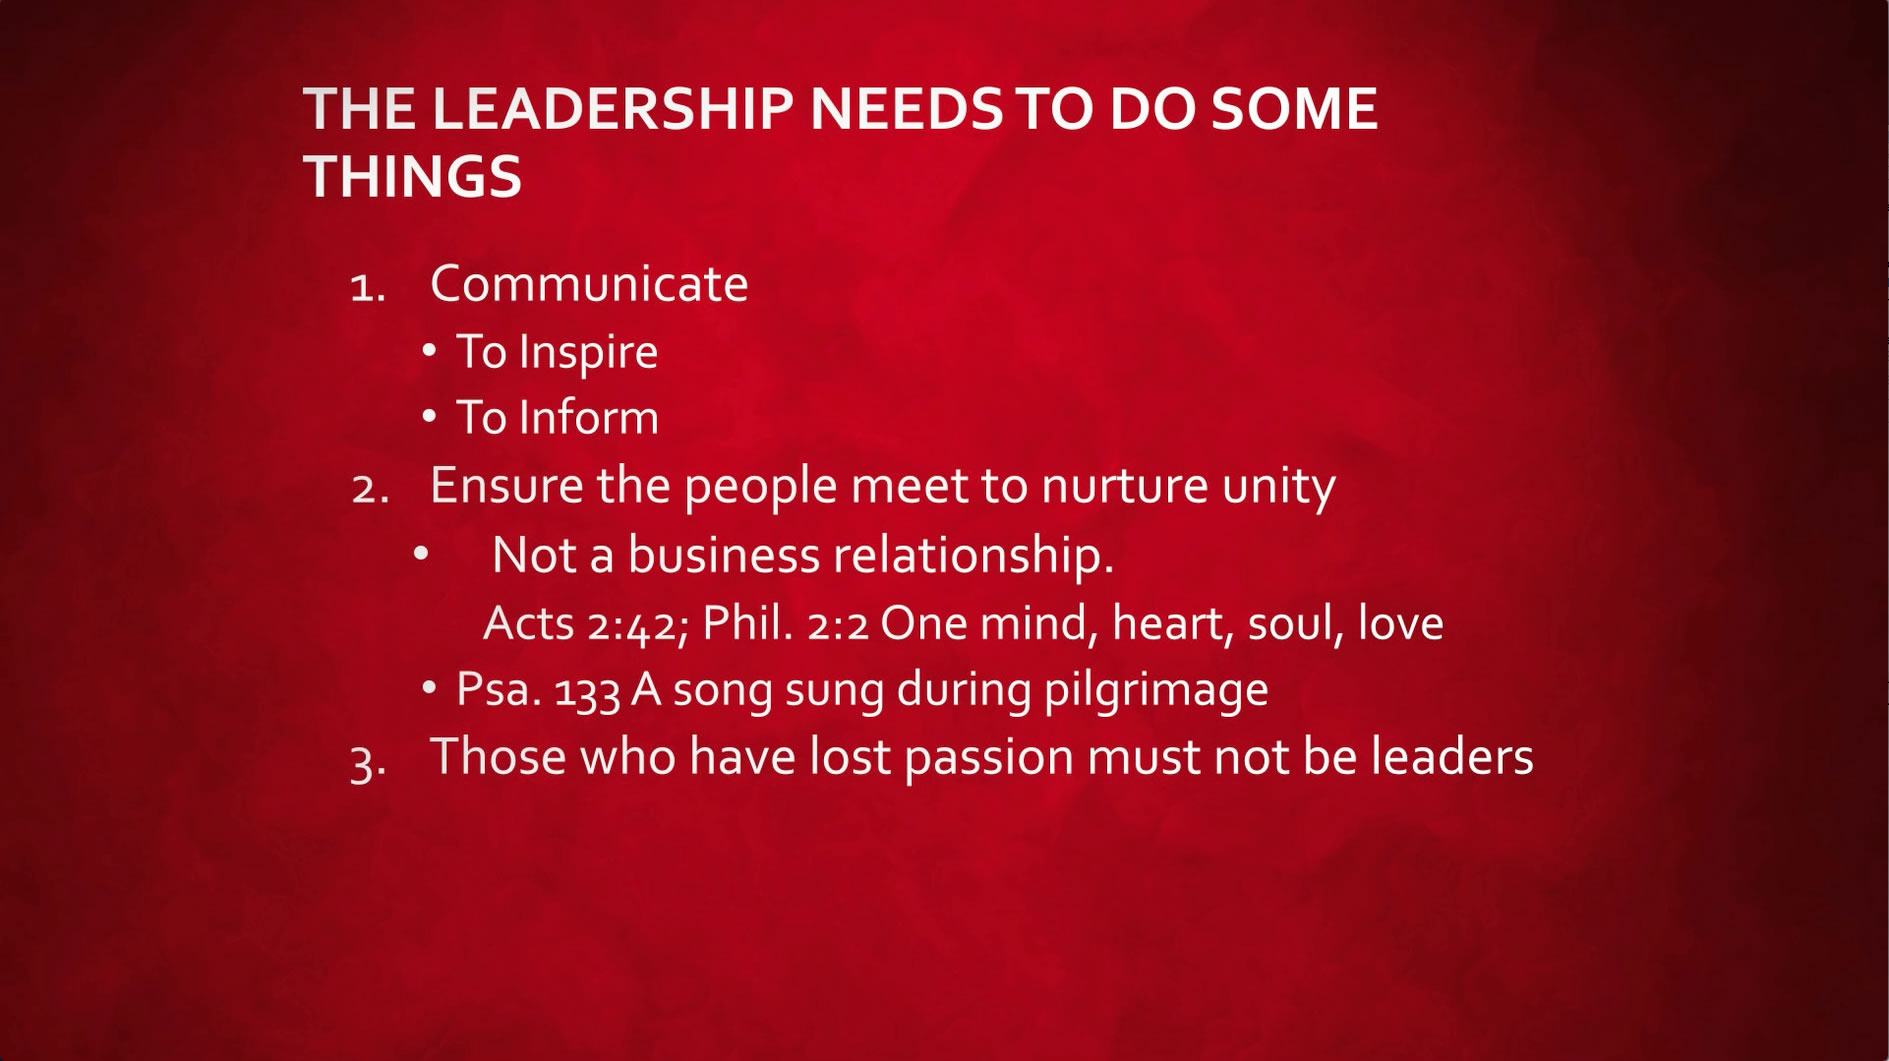 leadership needs to do some things 1889x1061